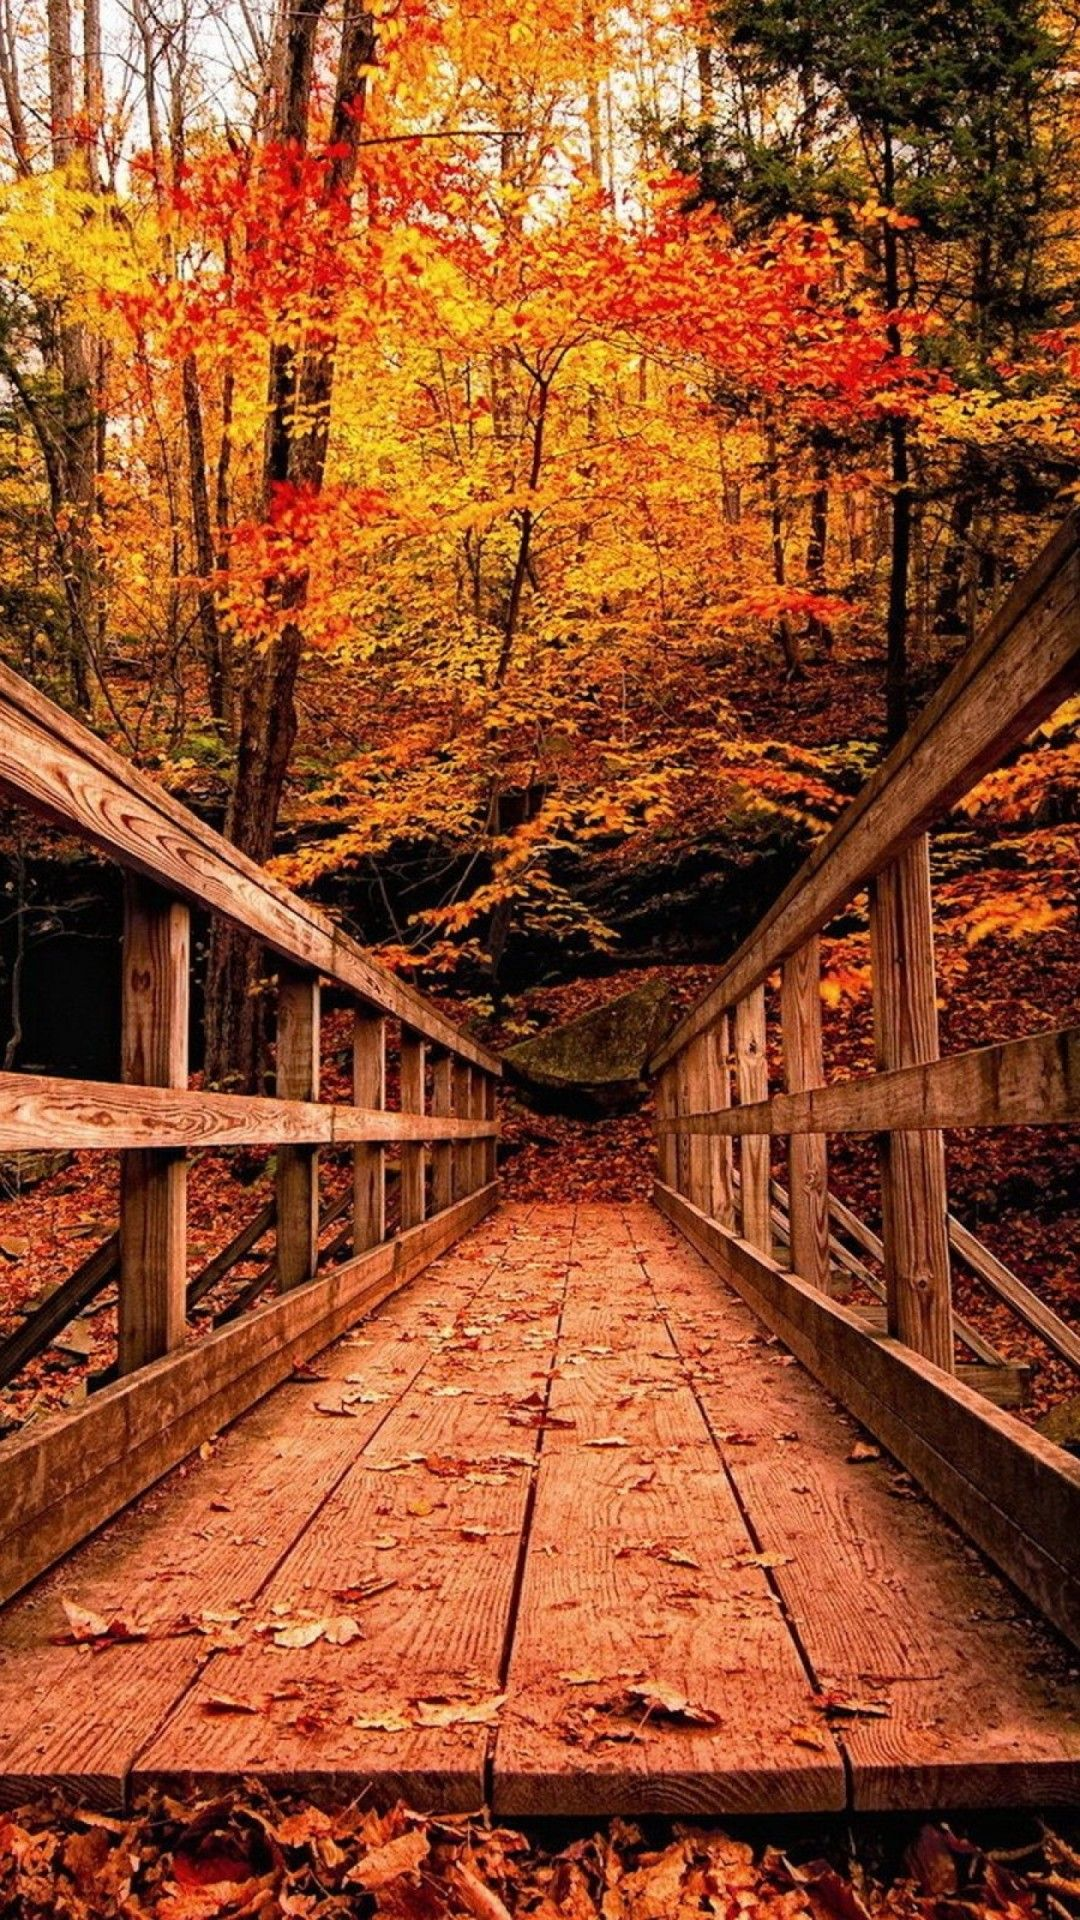 image for wood bridge in autumn forest hd wallpaper android phone